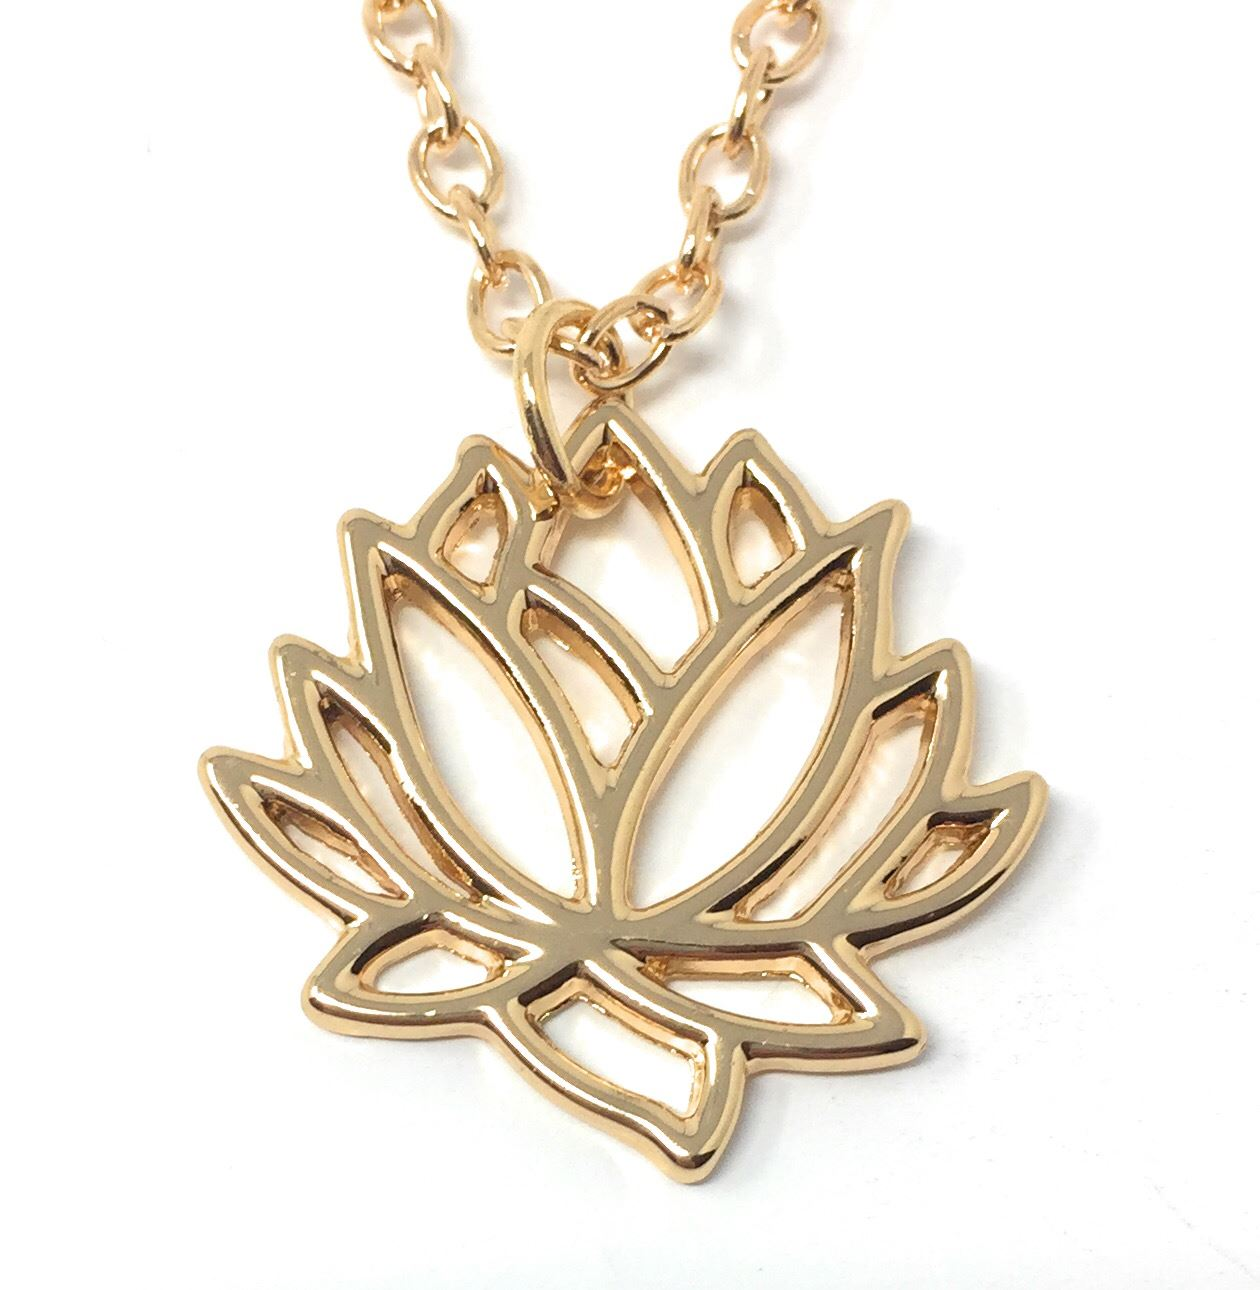 Gold plt lotus flower pendant necklace hollow leaf water namaste cadoline has been established since 2002 and over the years we have had thousands of satisfied customers many of which have stayed with us throughout our izmirmasajfo